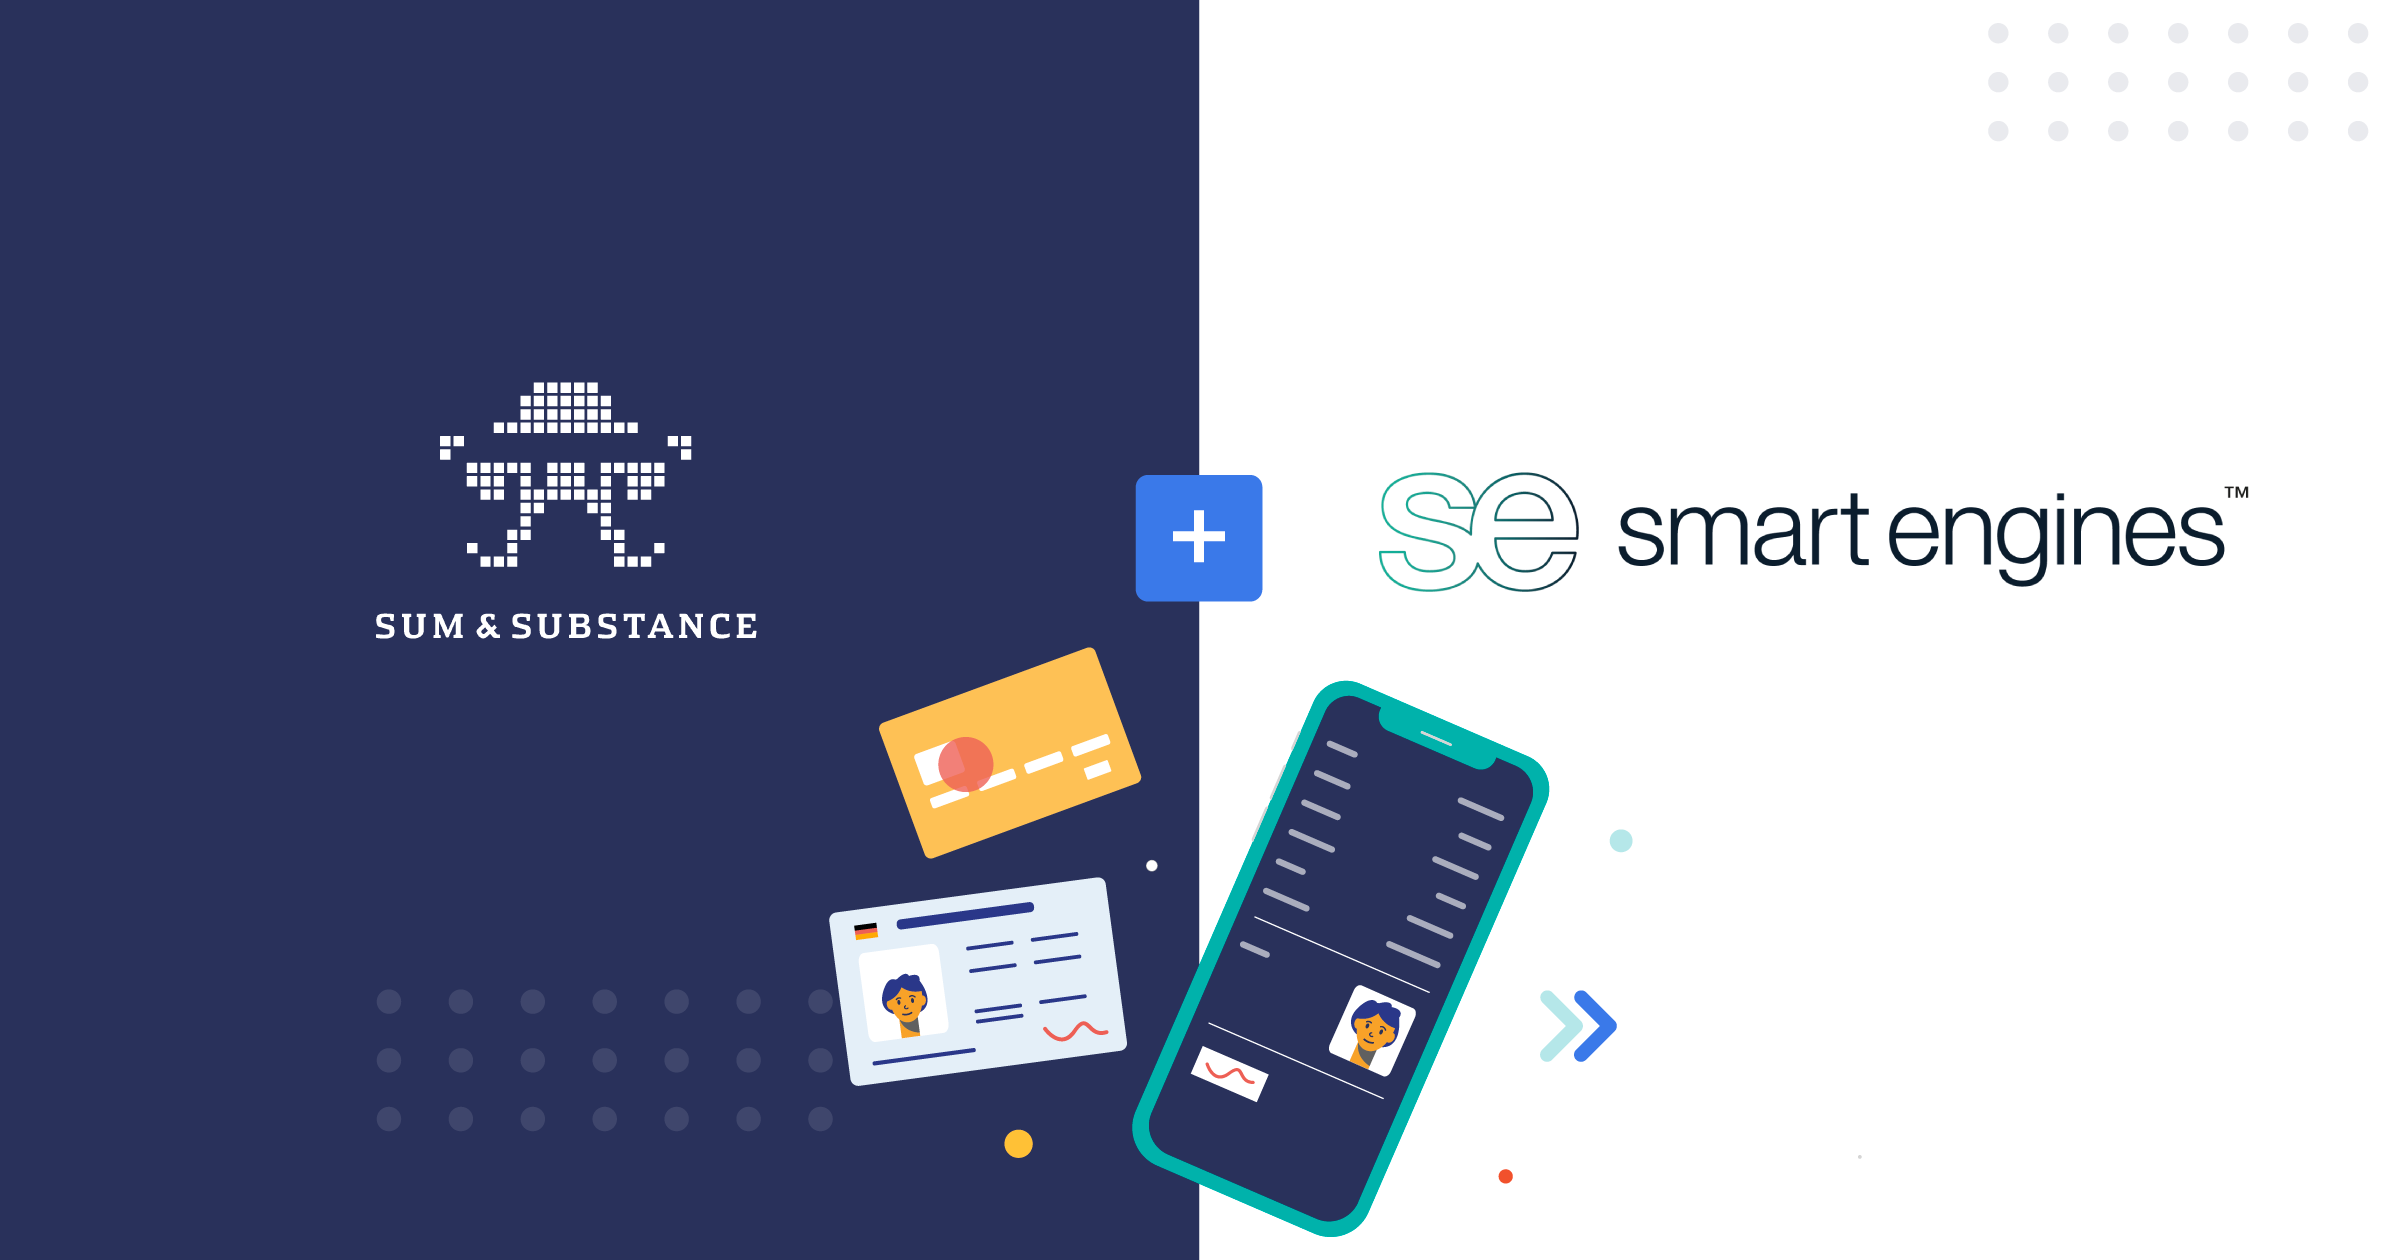 Sumsub and Smart Engines partner to boost fraud recognition capabilities in the fight against ID forgery